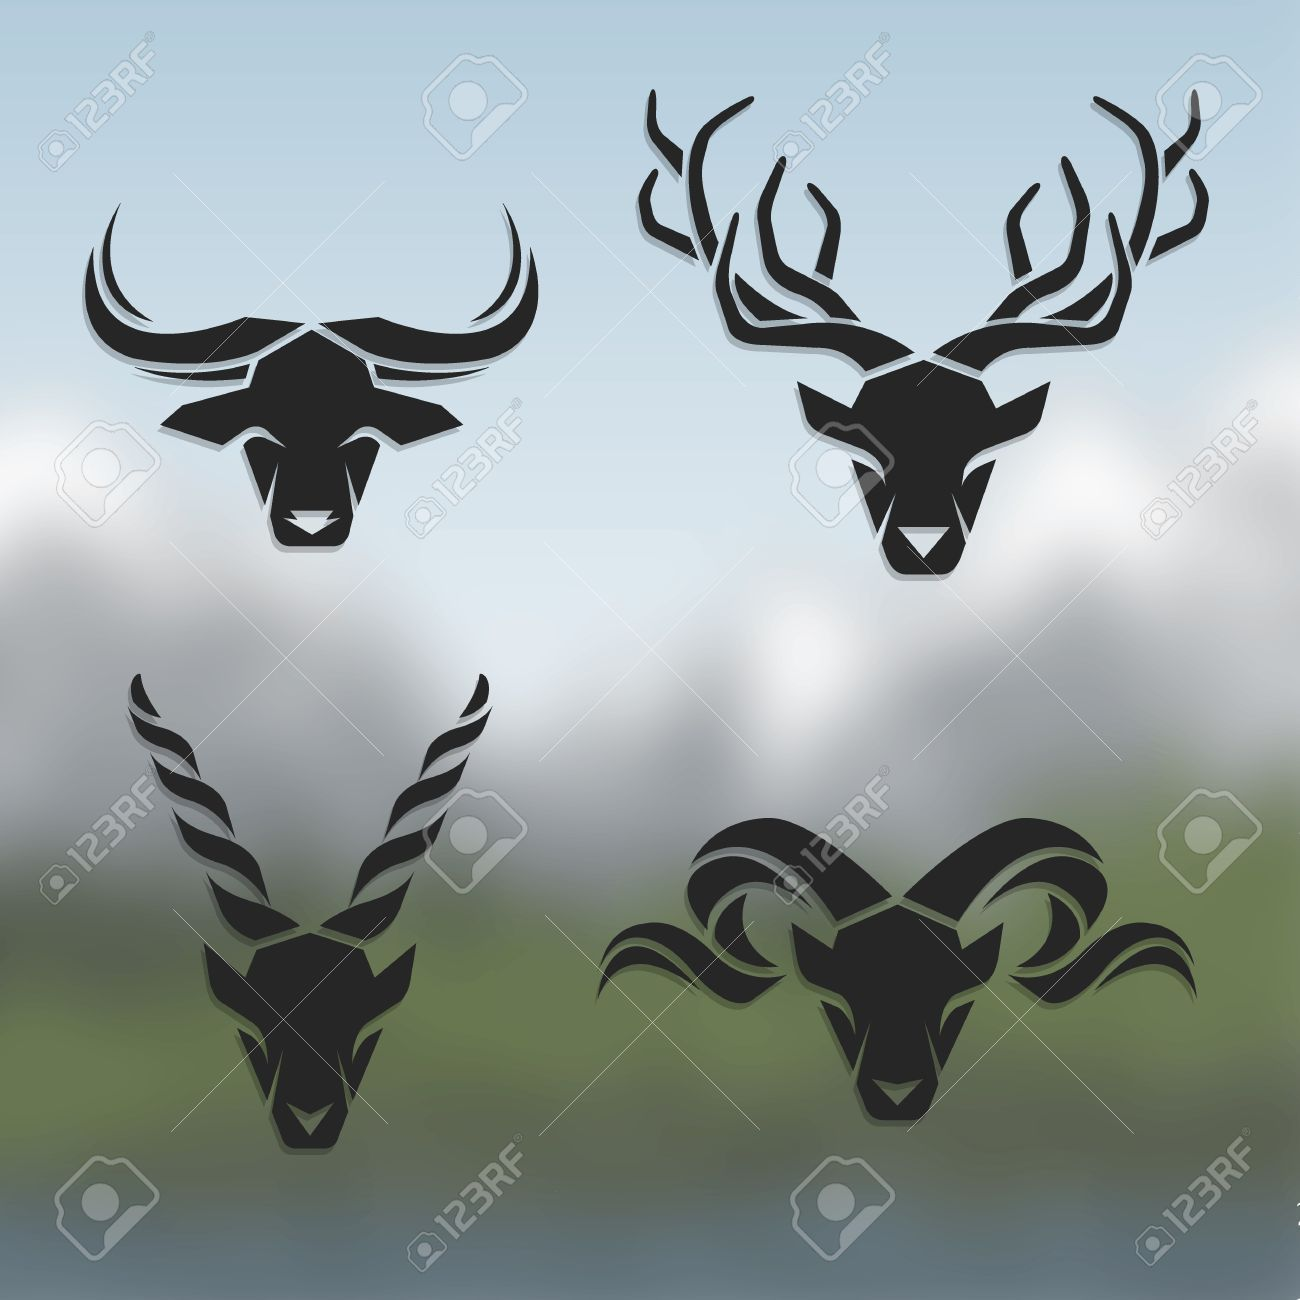 Mountain Goat Stock Vector Illustration And Royalty Free Mountain ...